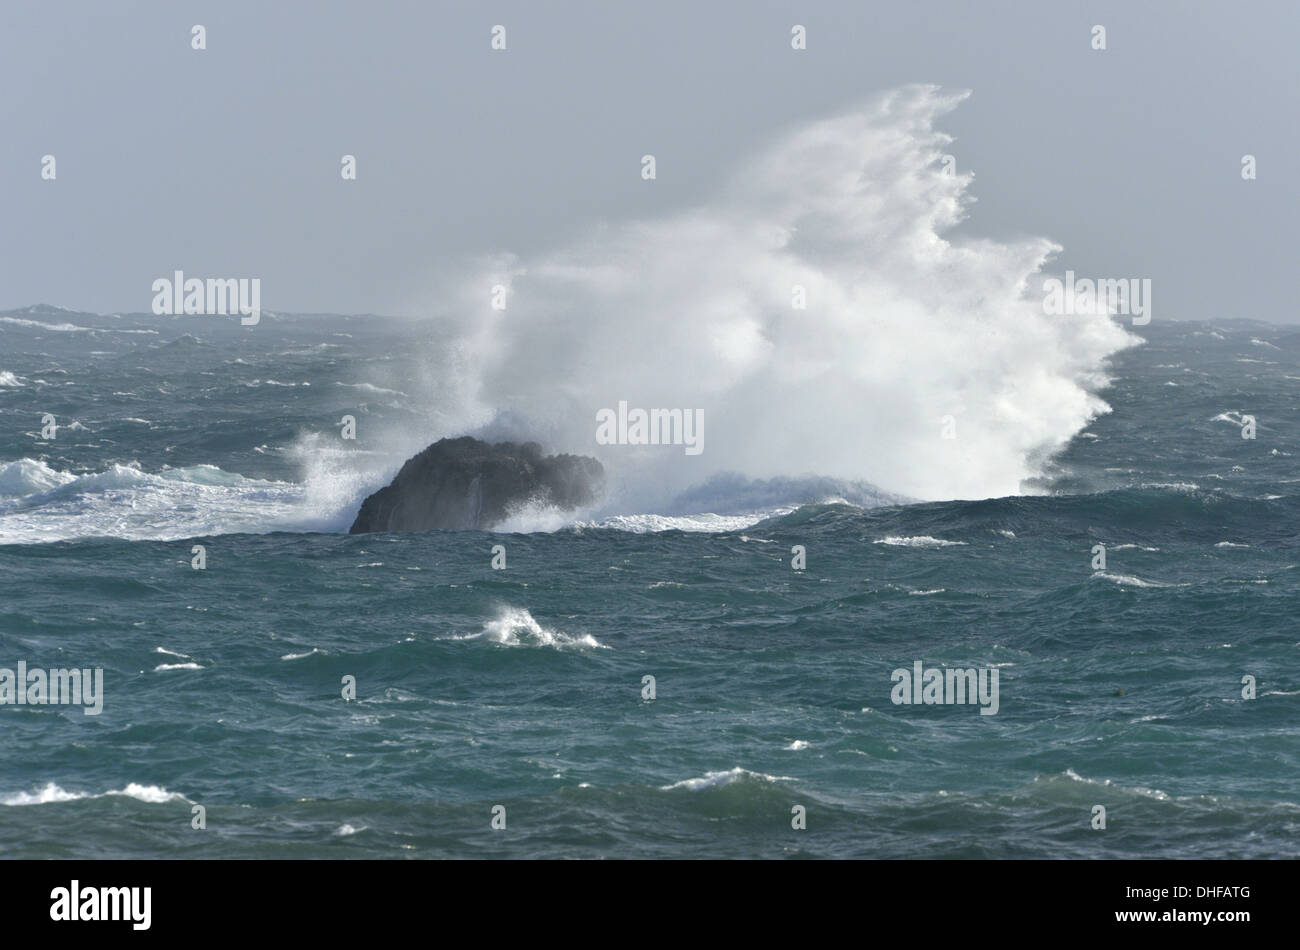 Rough sea on the British coast - Stock Image